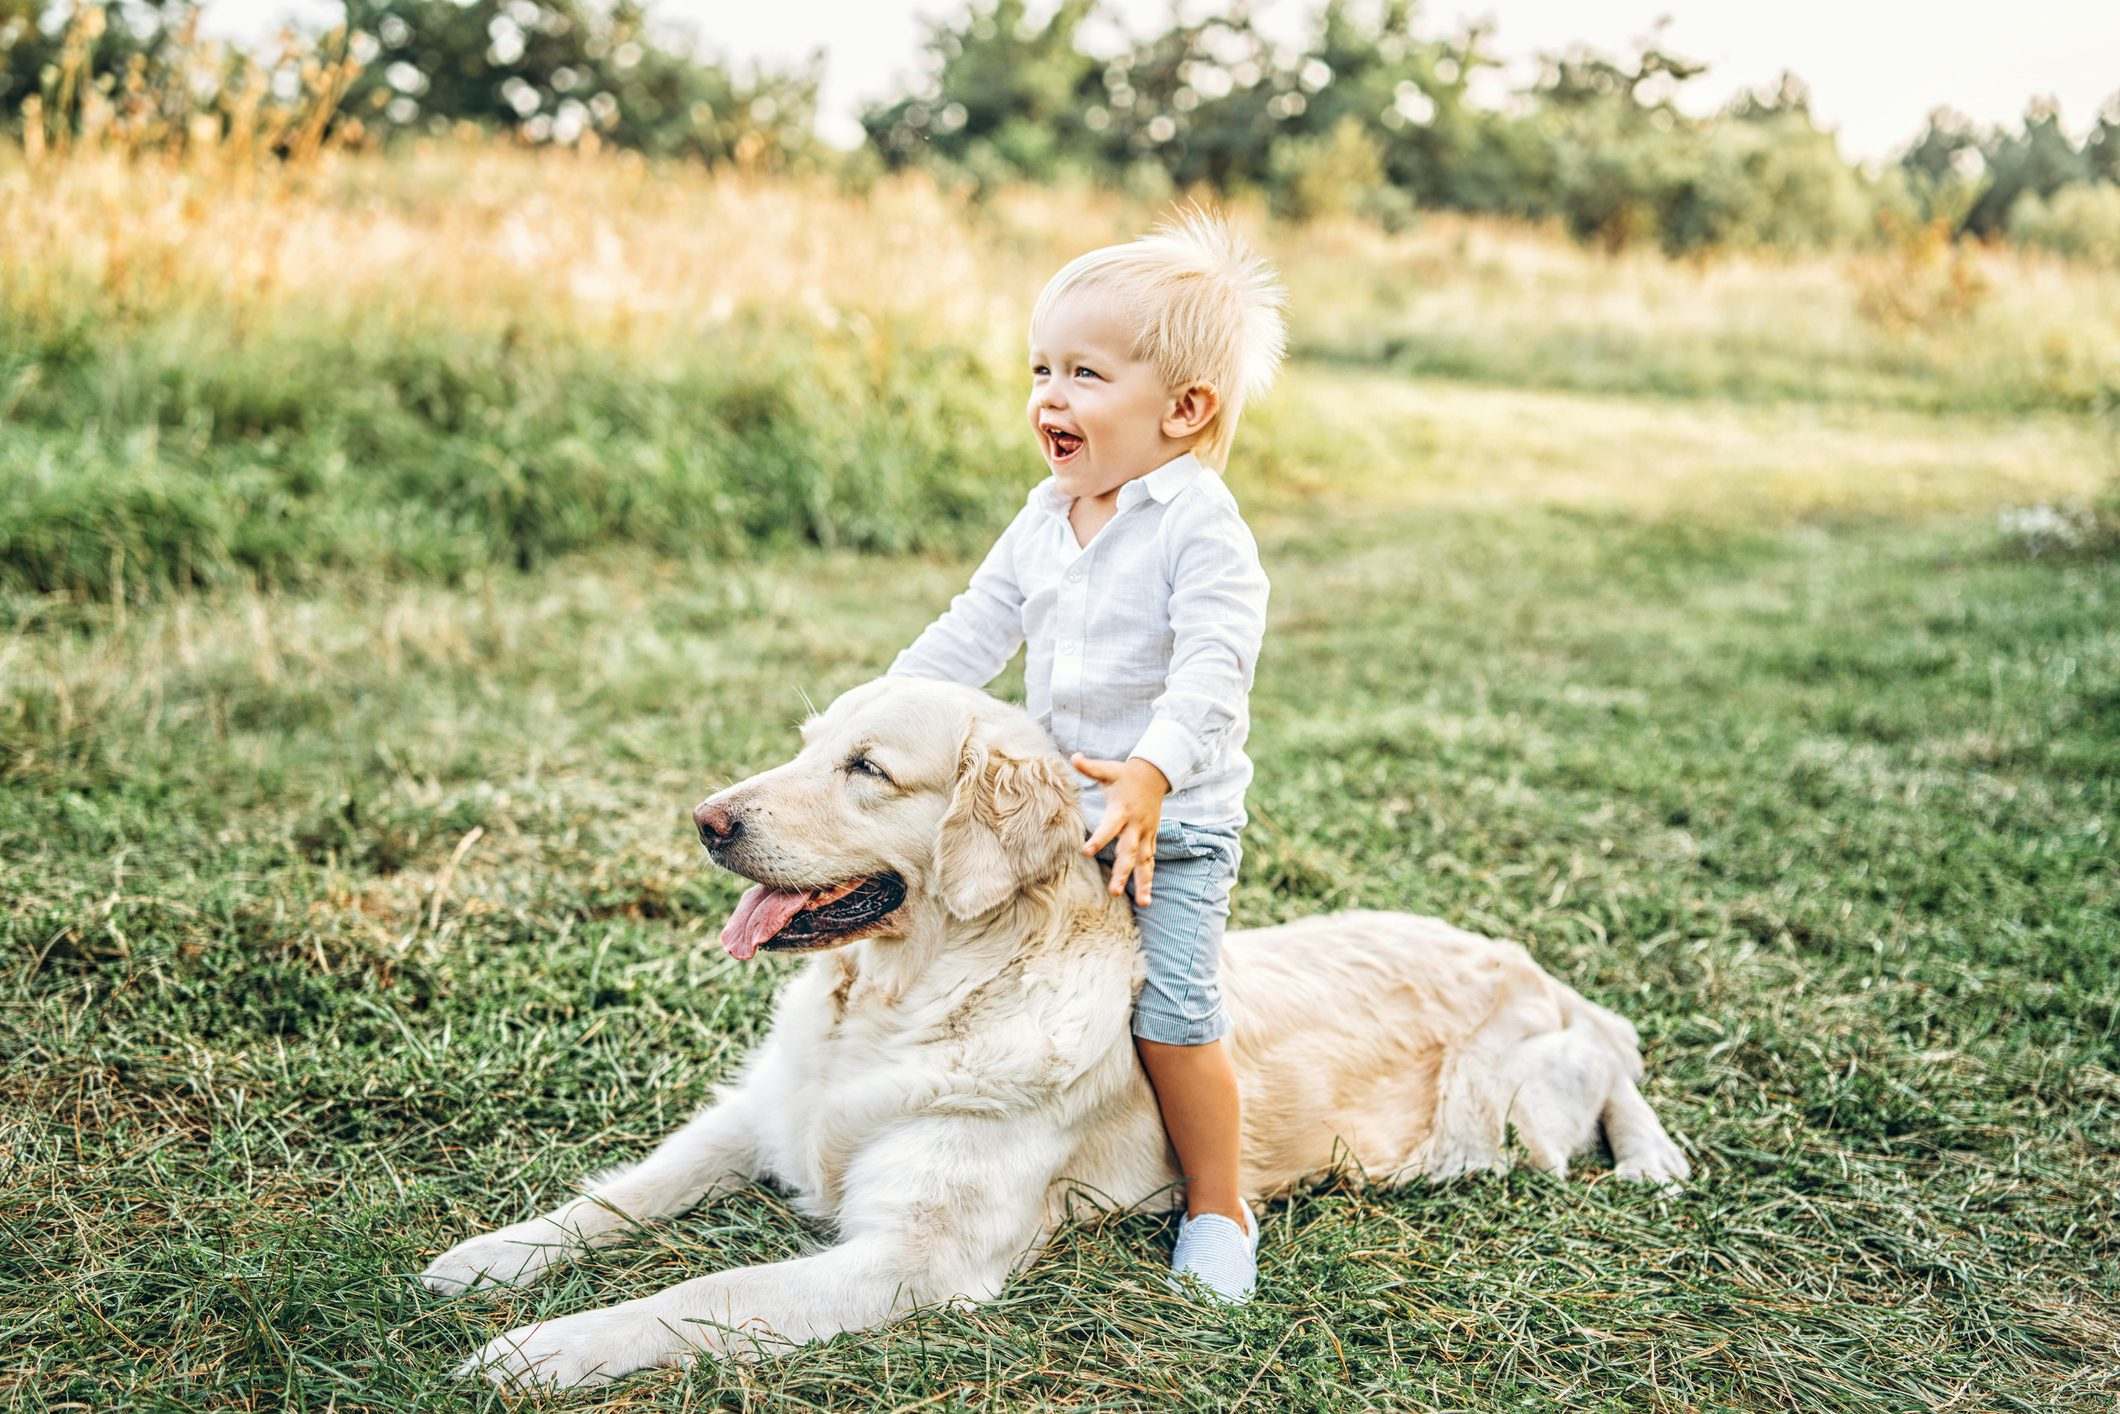 Smiling Boy With Dog Sitting On Field